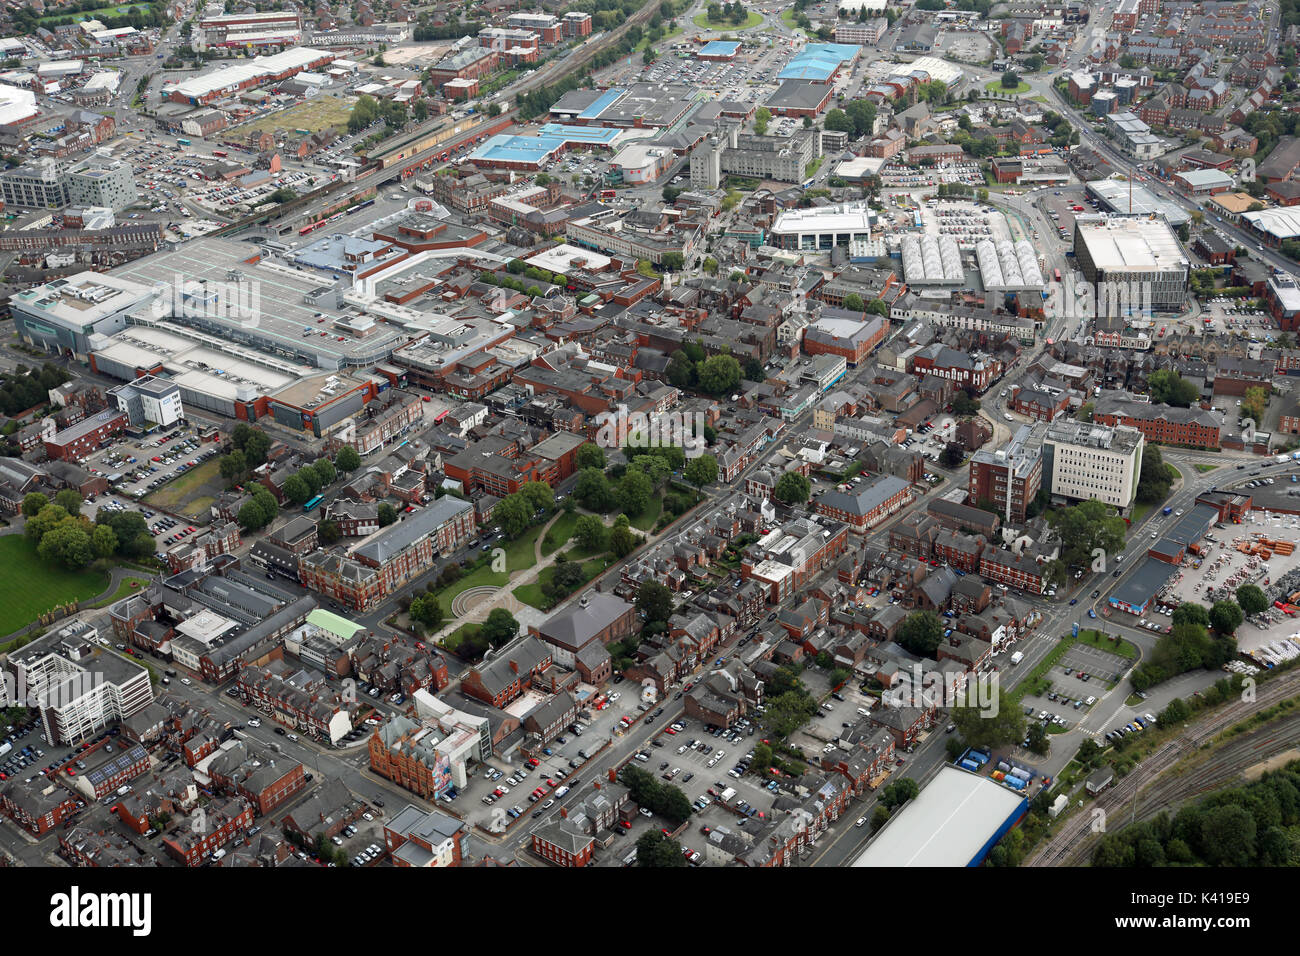 aerial view of Warrington town centre including Palmyra Square, UK - Stock Image